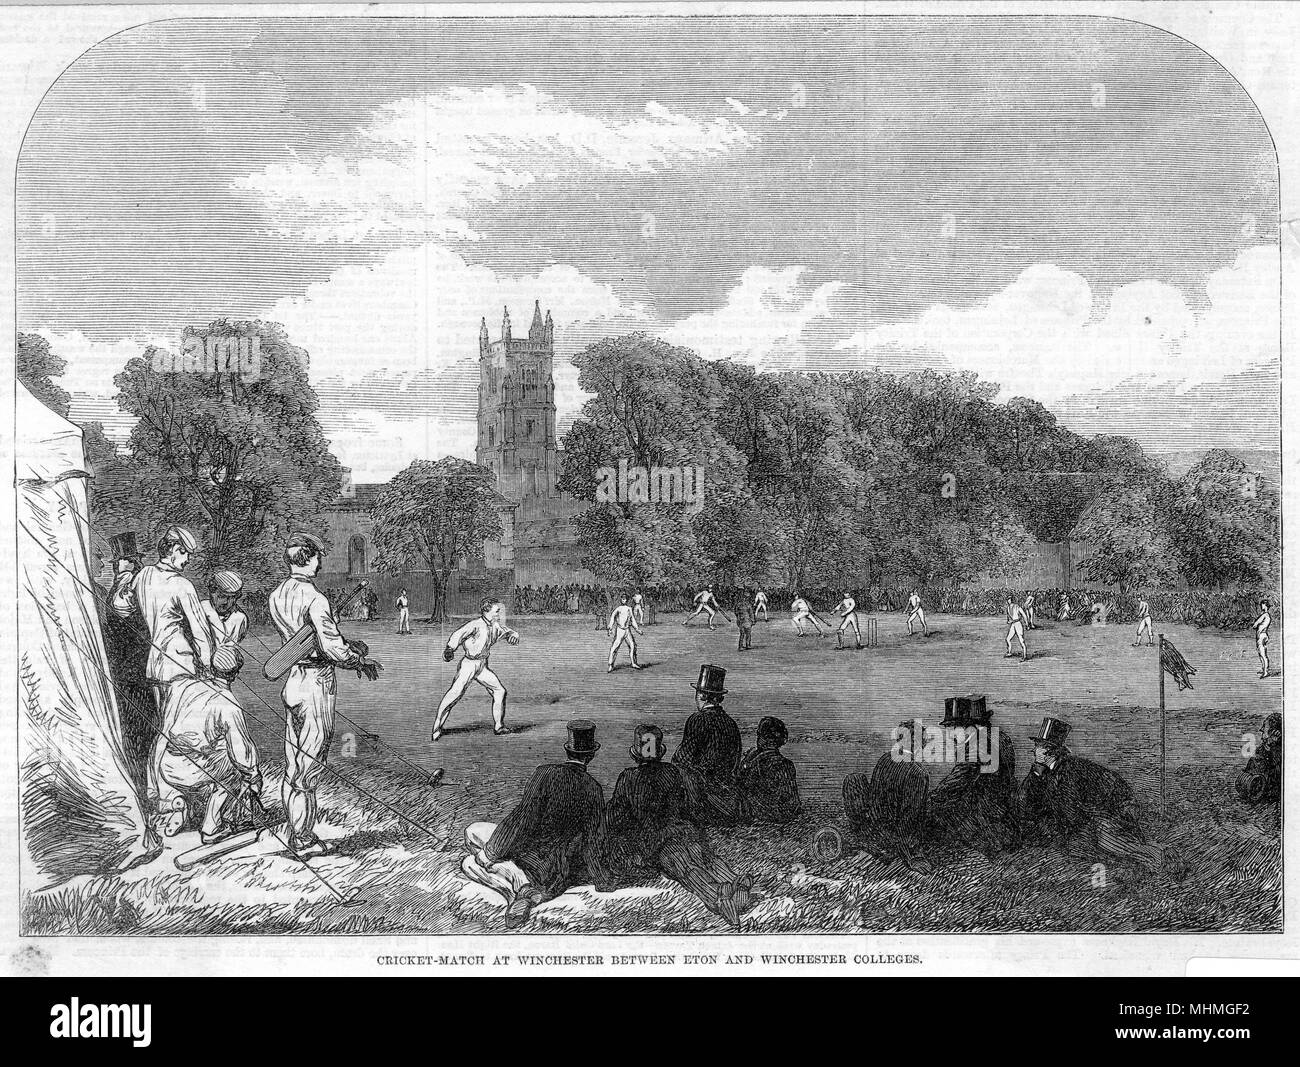 Cricket match at Winchester between Eton and Winchester colleges.       Date: 1864 - Stock Image